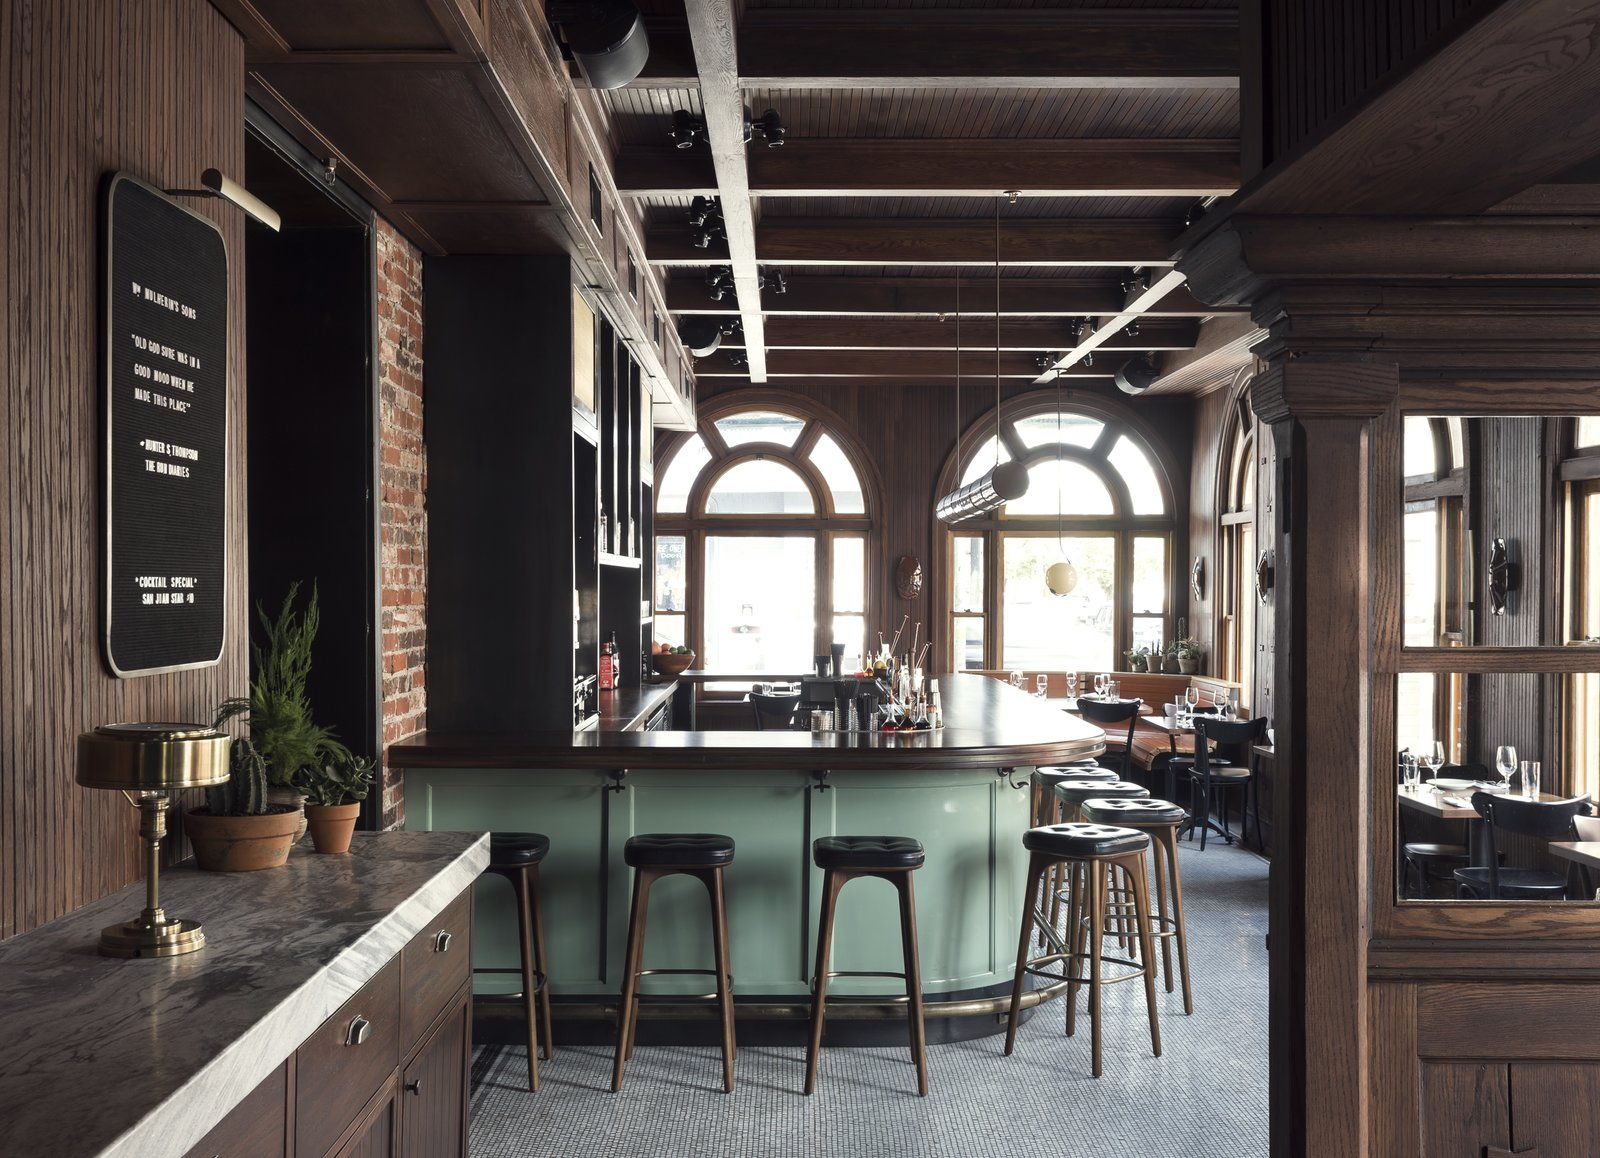 history and modernity meet in this industrial hotel and restaurant